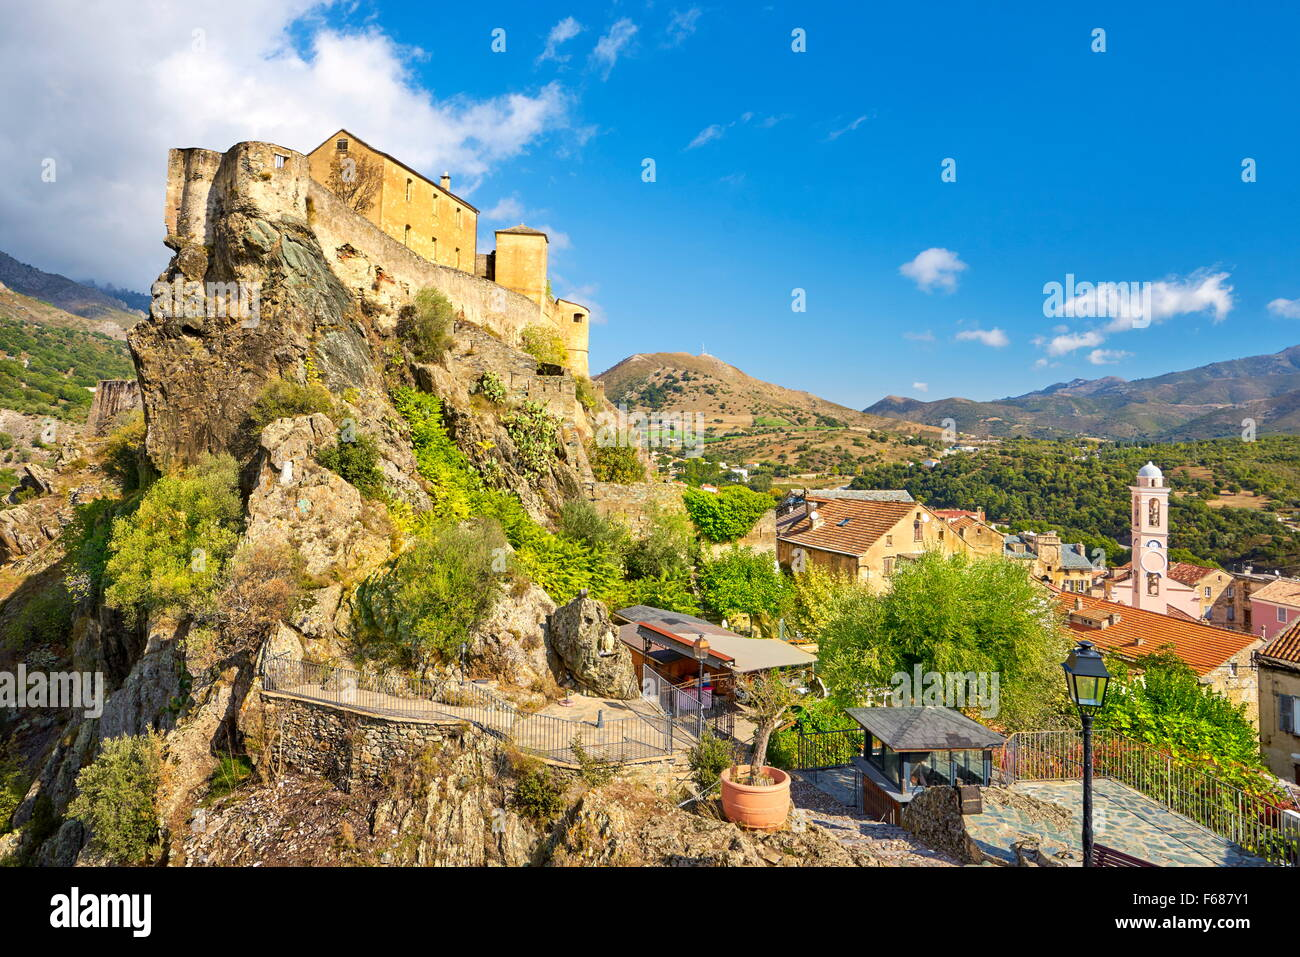 Corte, the Citadel in the Old Town, Corsica Island, France - Stock Image